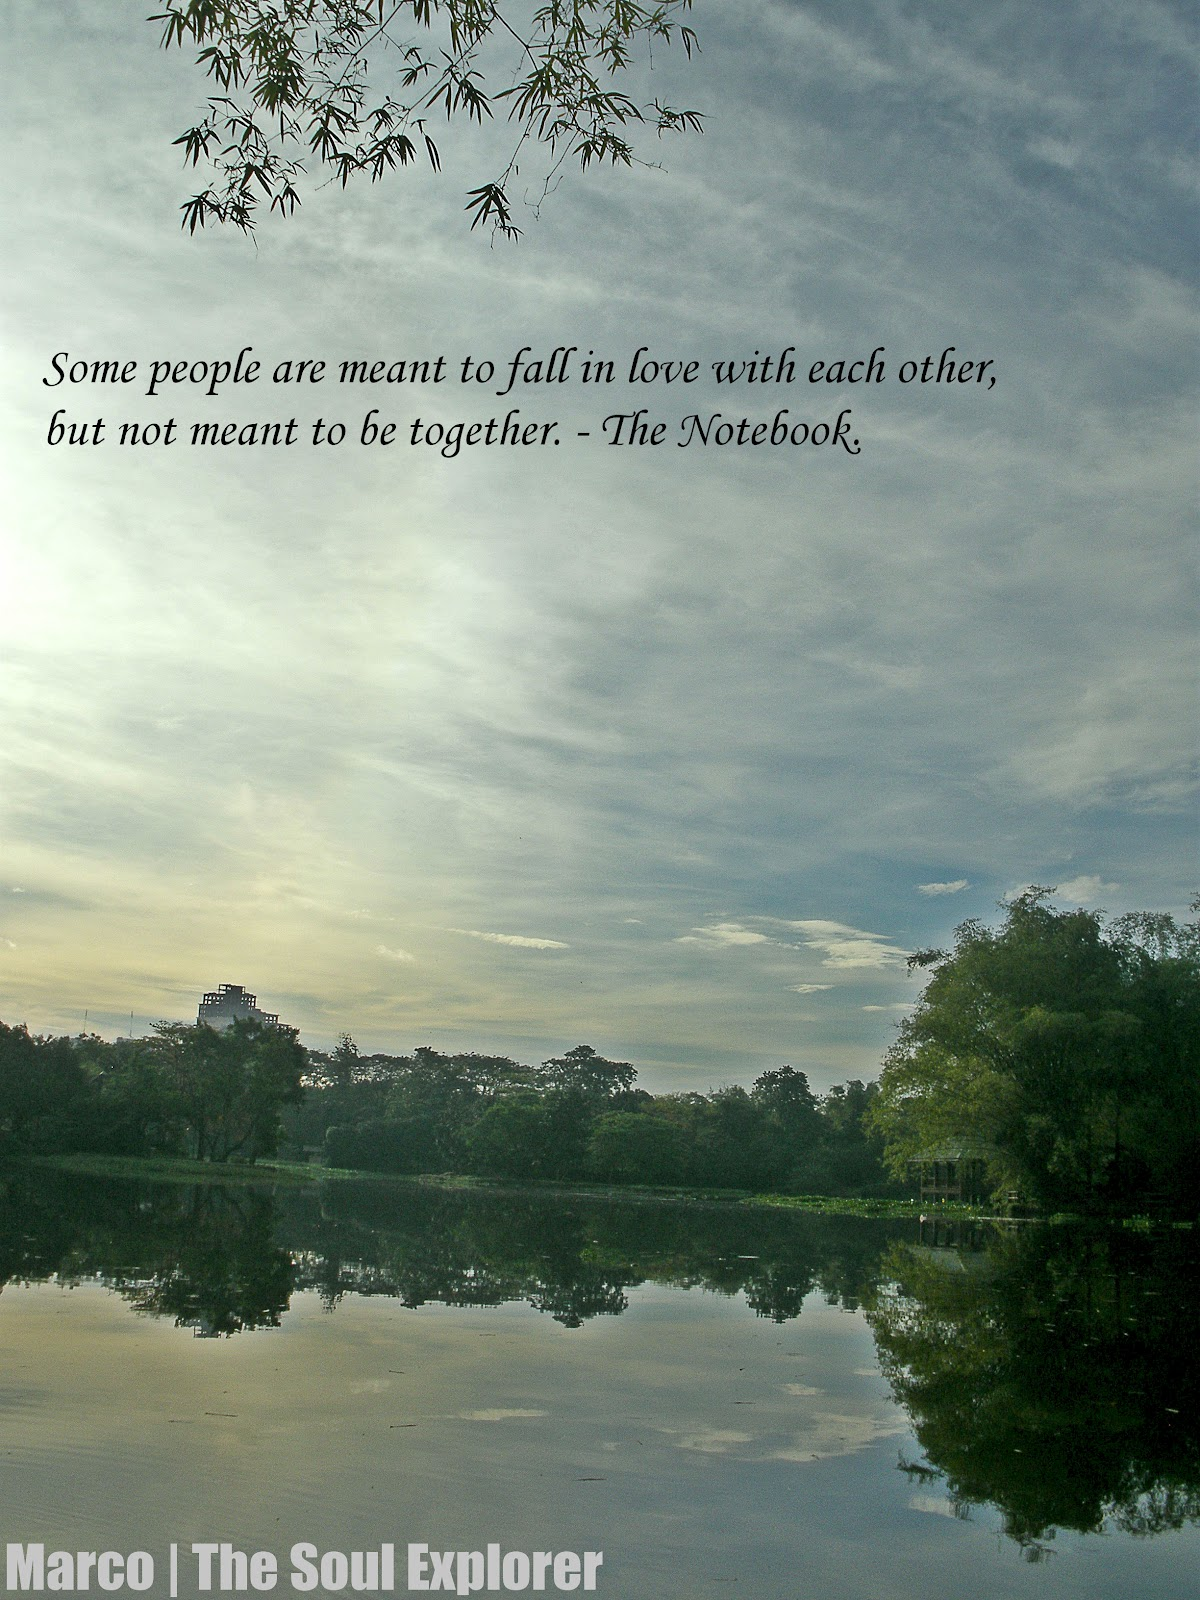 The Notebook Sad Quotes. QuotesGram